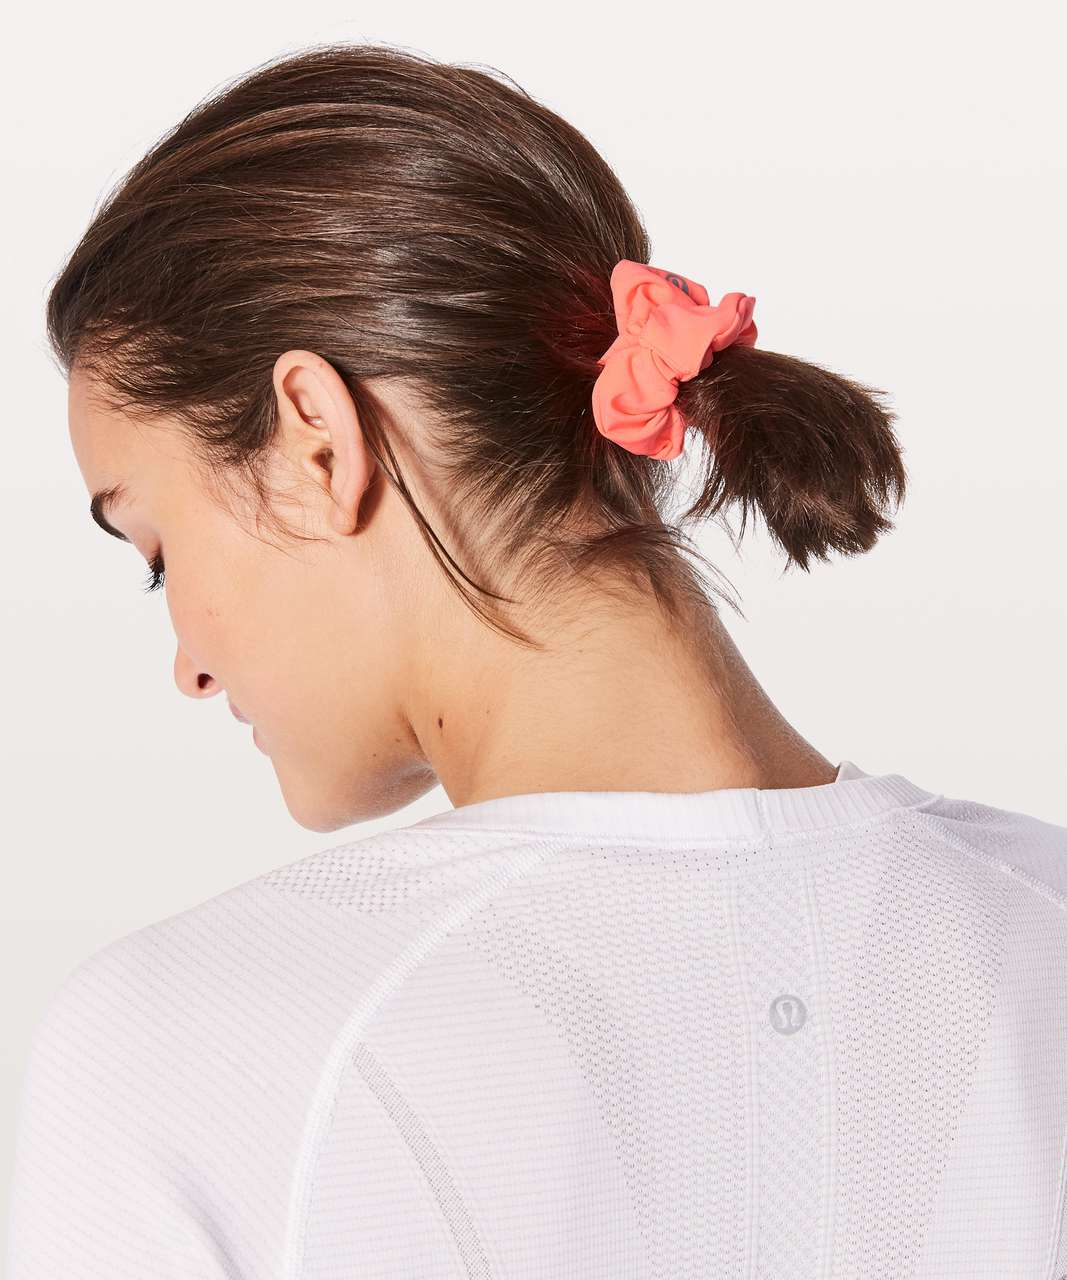 Lululemon Uplifting Scrunchie - Sunset